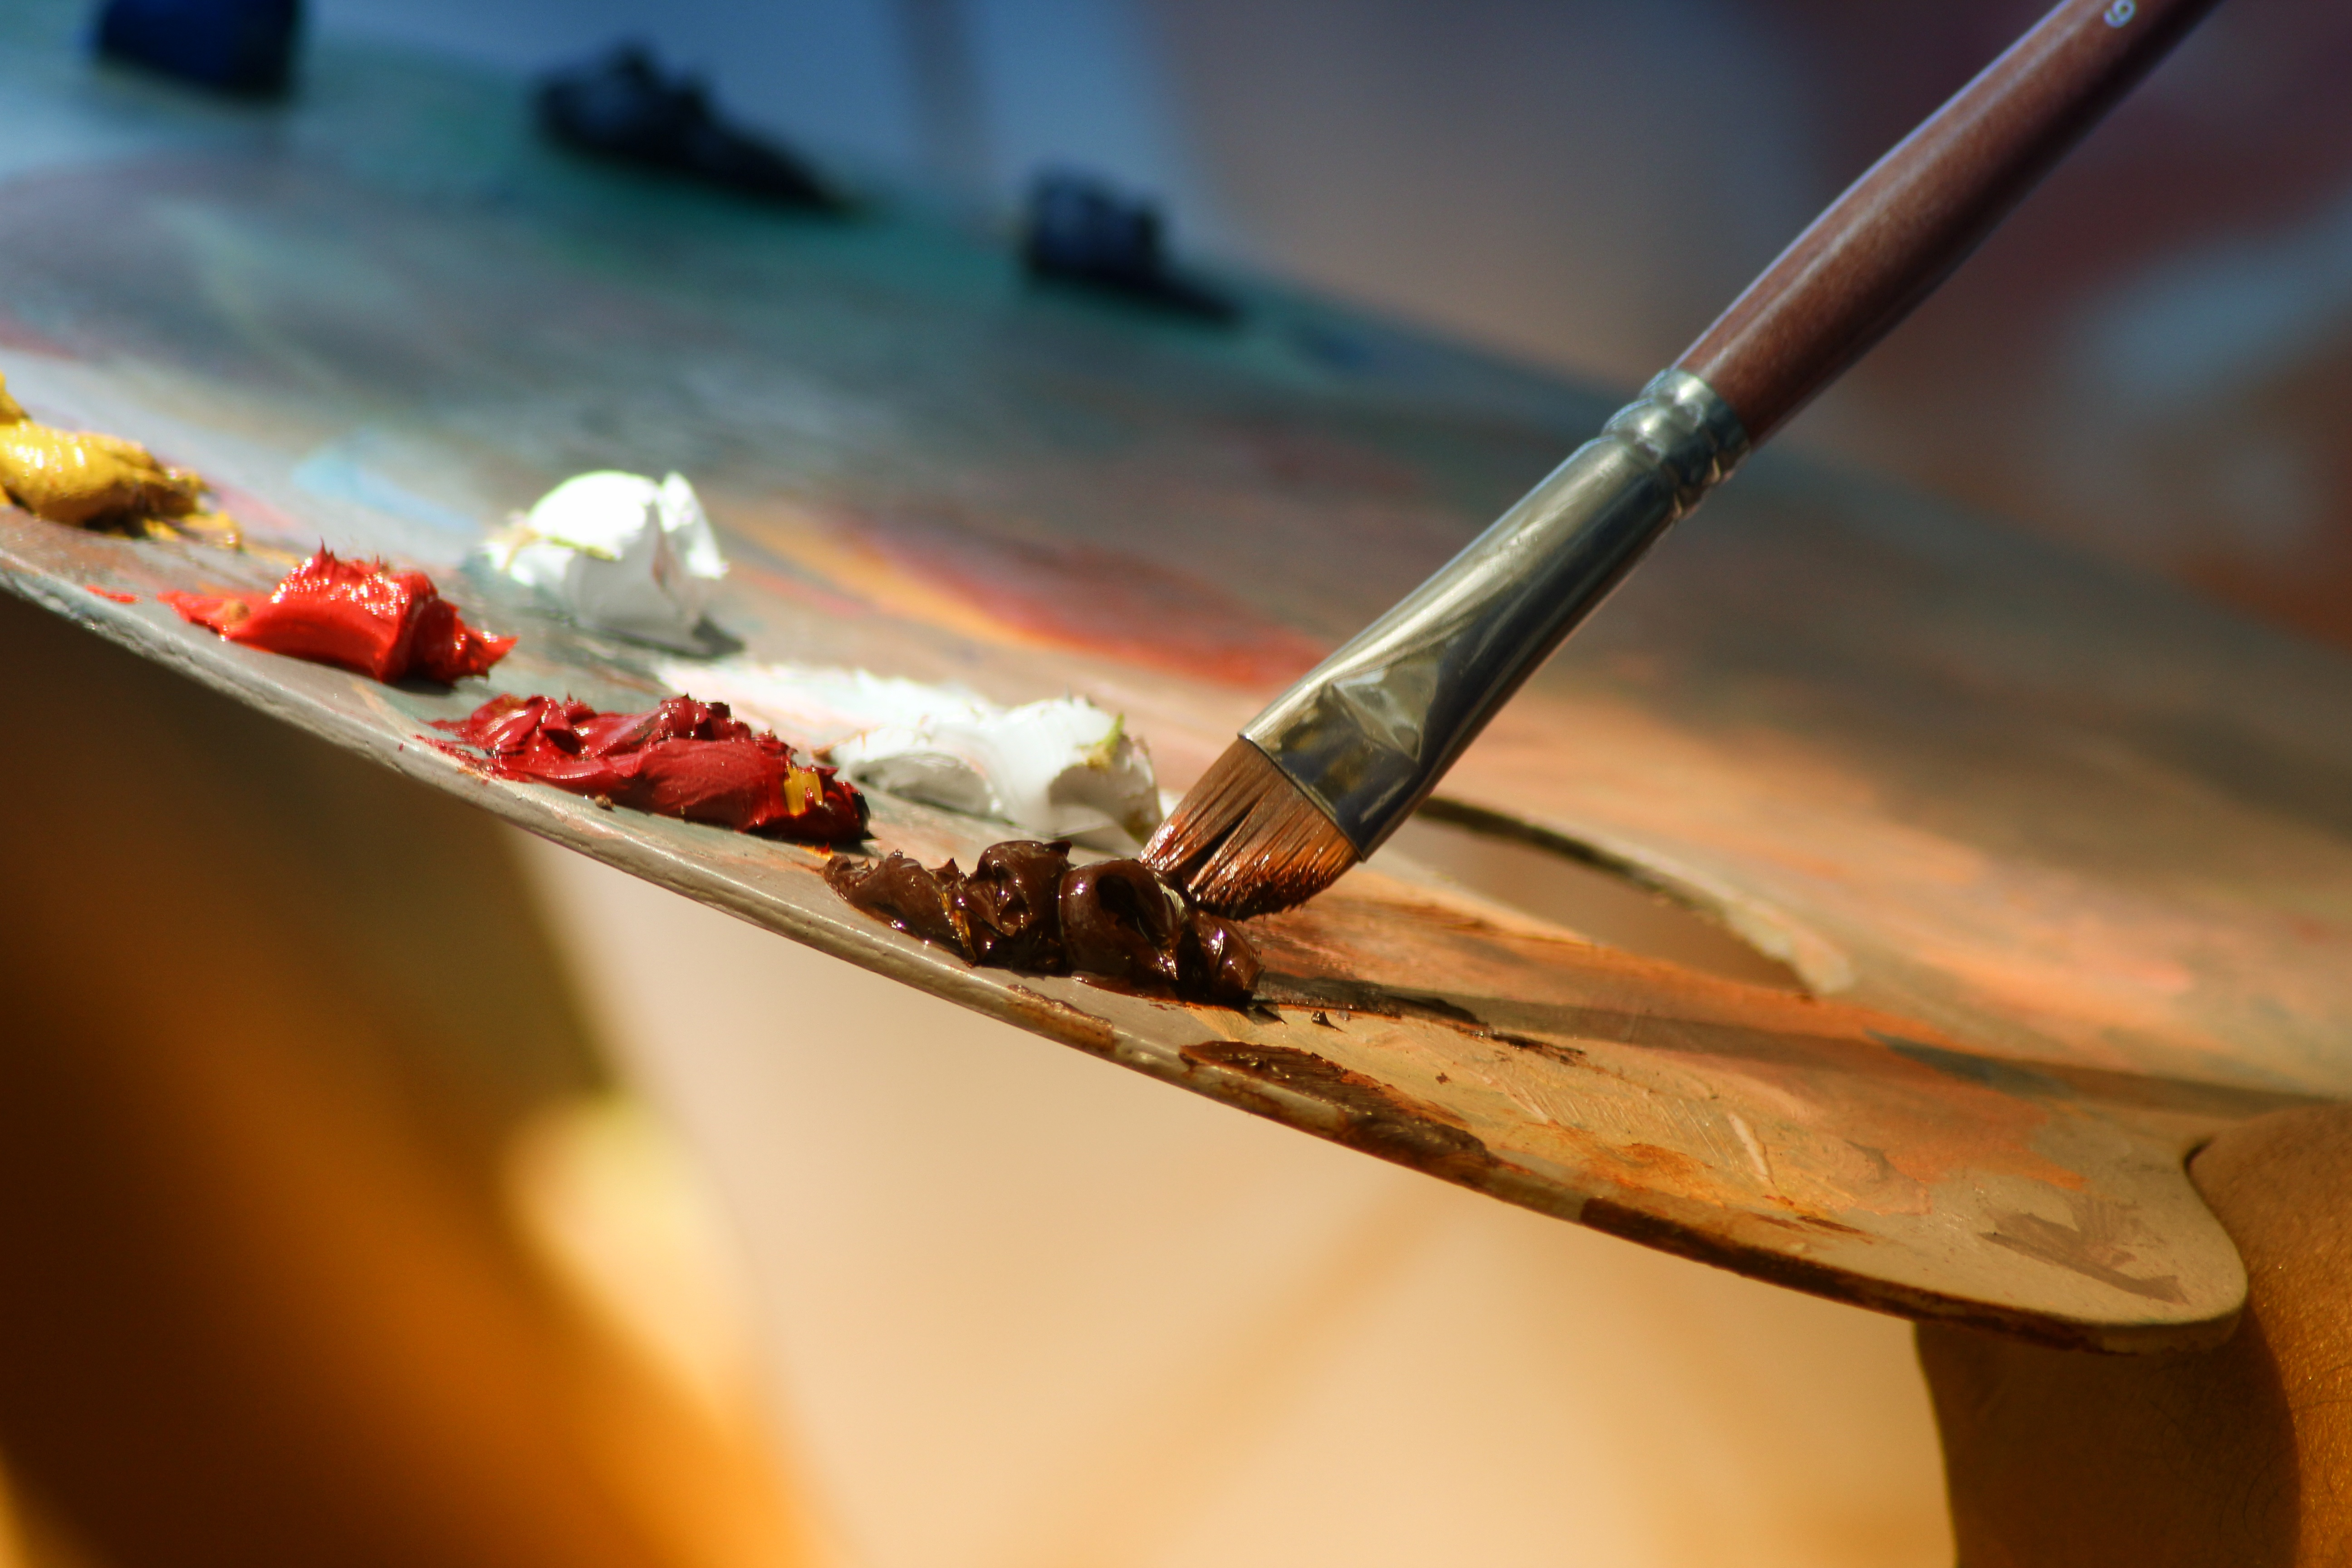 Hocking College Faculty | Golden Hour Oil Painting with Aaron Smith<br>Aaron Smith